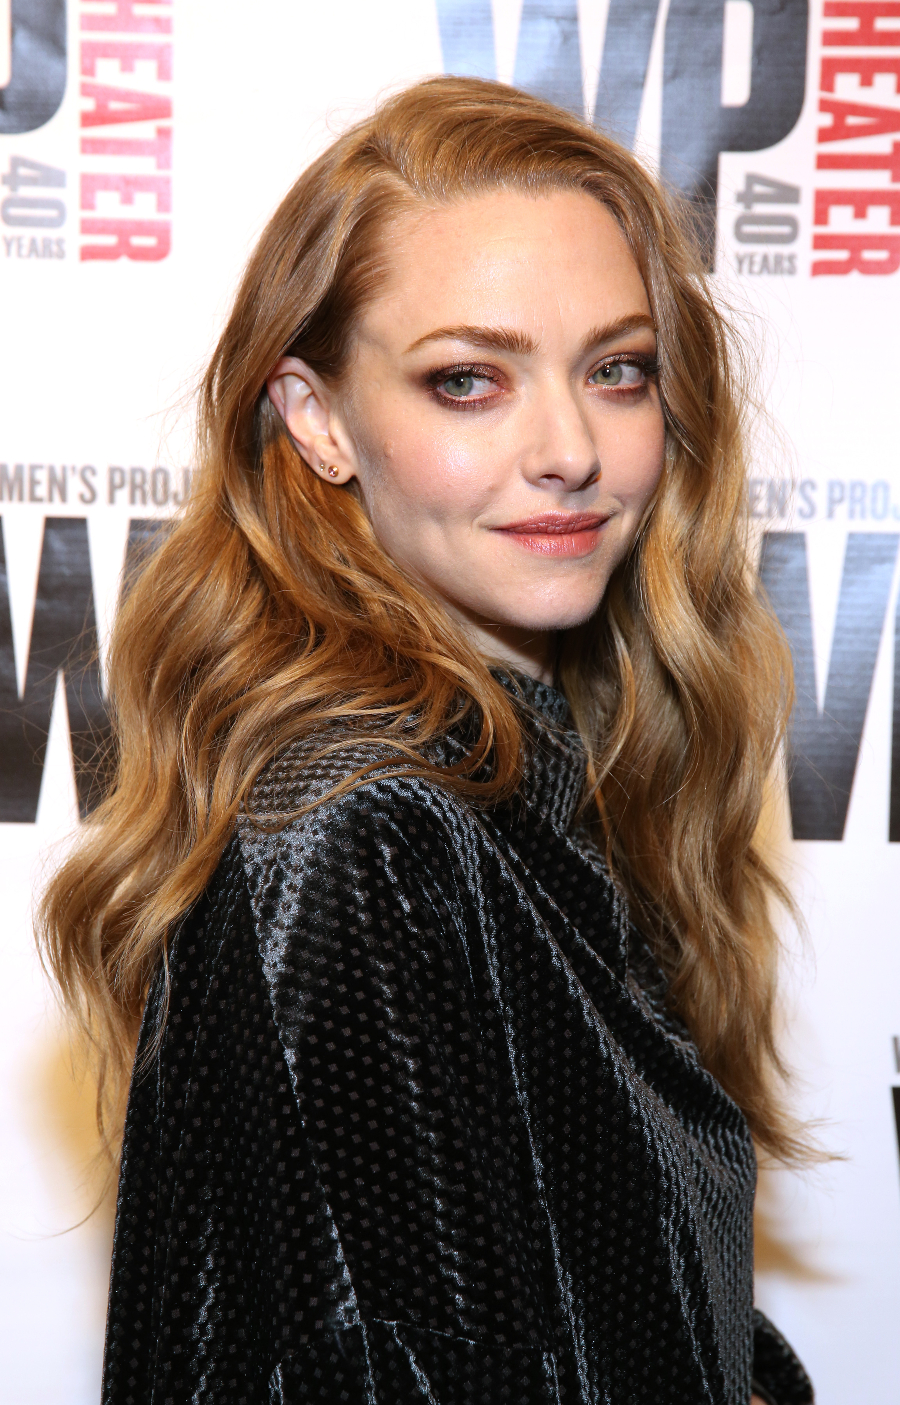 WP Theater's 40th Anniversary Gala NEW YORK, NY - APRIL 15: Amanda Seyfried attend the WP Theater's 40th Anniversary Gala - Women of Achievement Awards at the Edison Hotel on April 15, 2019 in New York City. (Photo by Walter McBride/WireImage,)